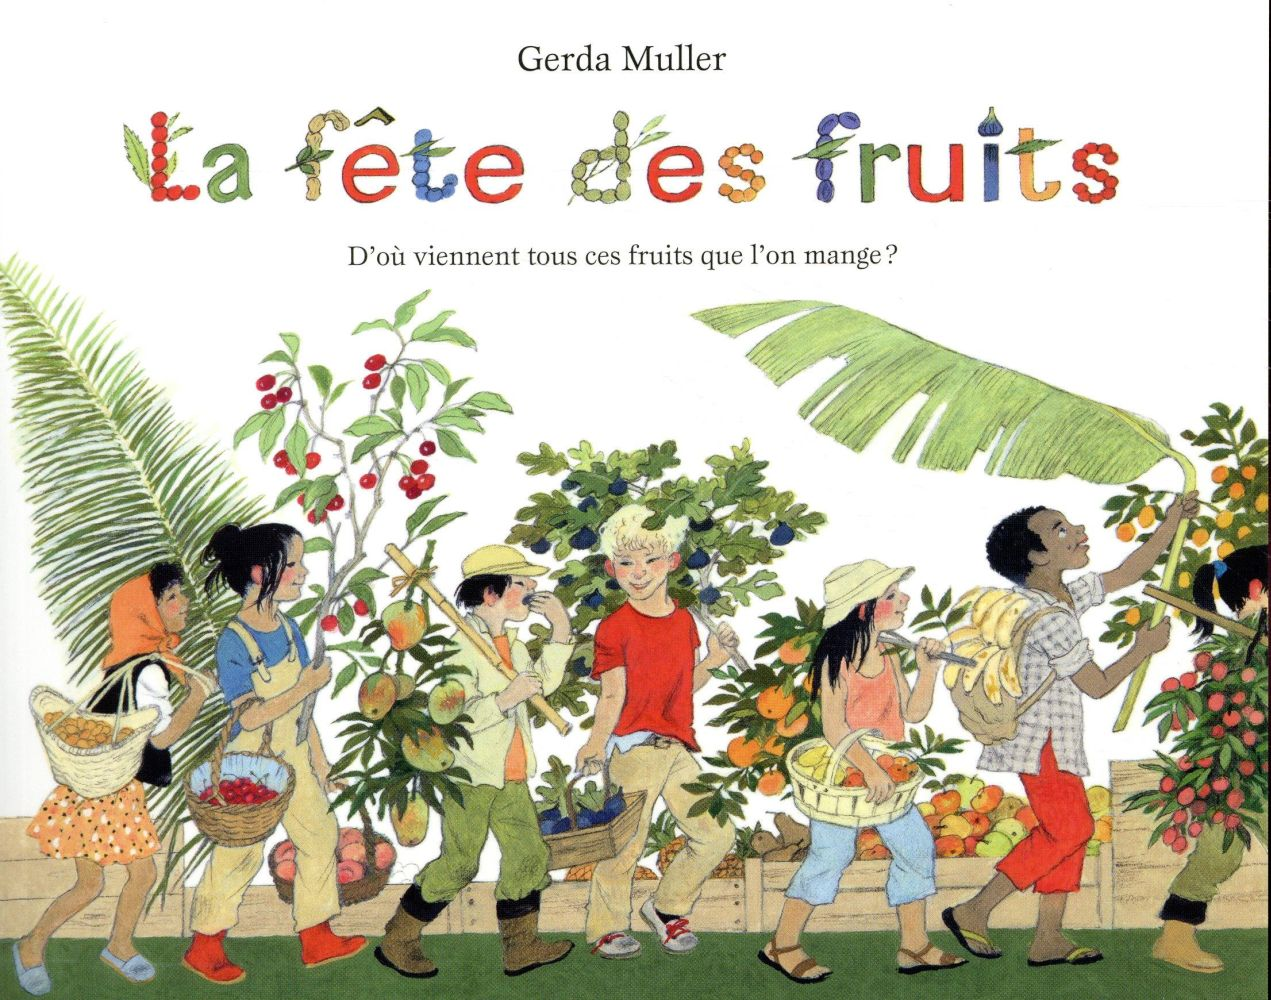 LA FETE DES FRUITS D'OU VIENNENT TOUS CES FRUITS QUE L'ON MANGE ?